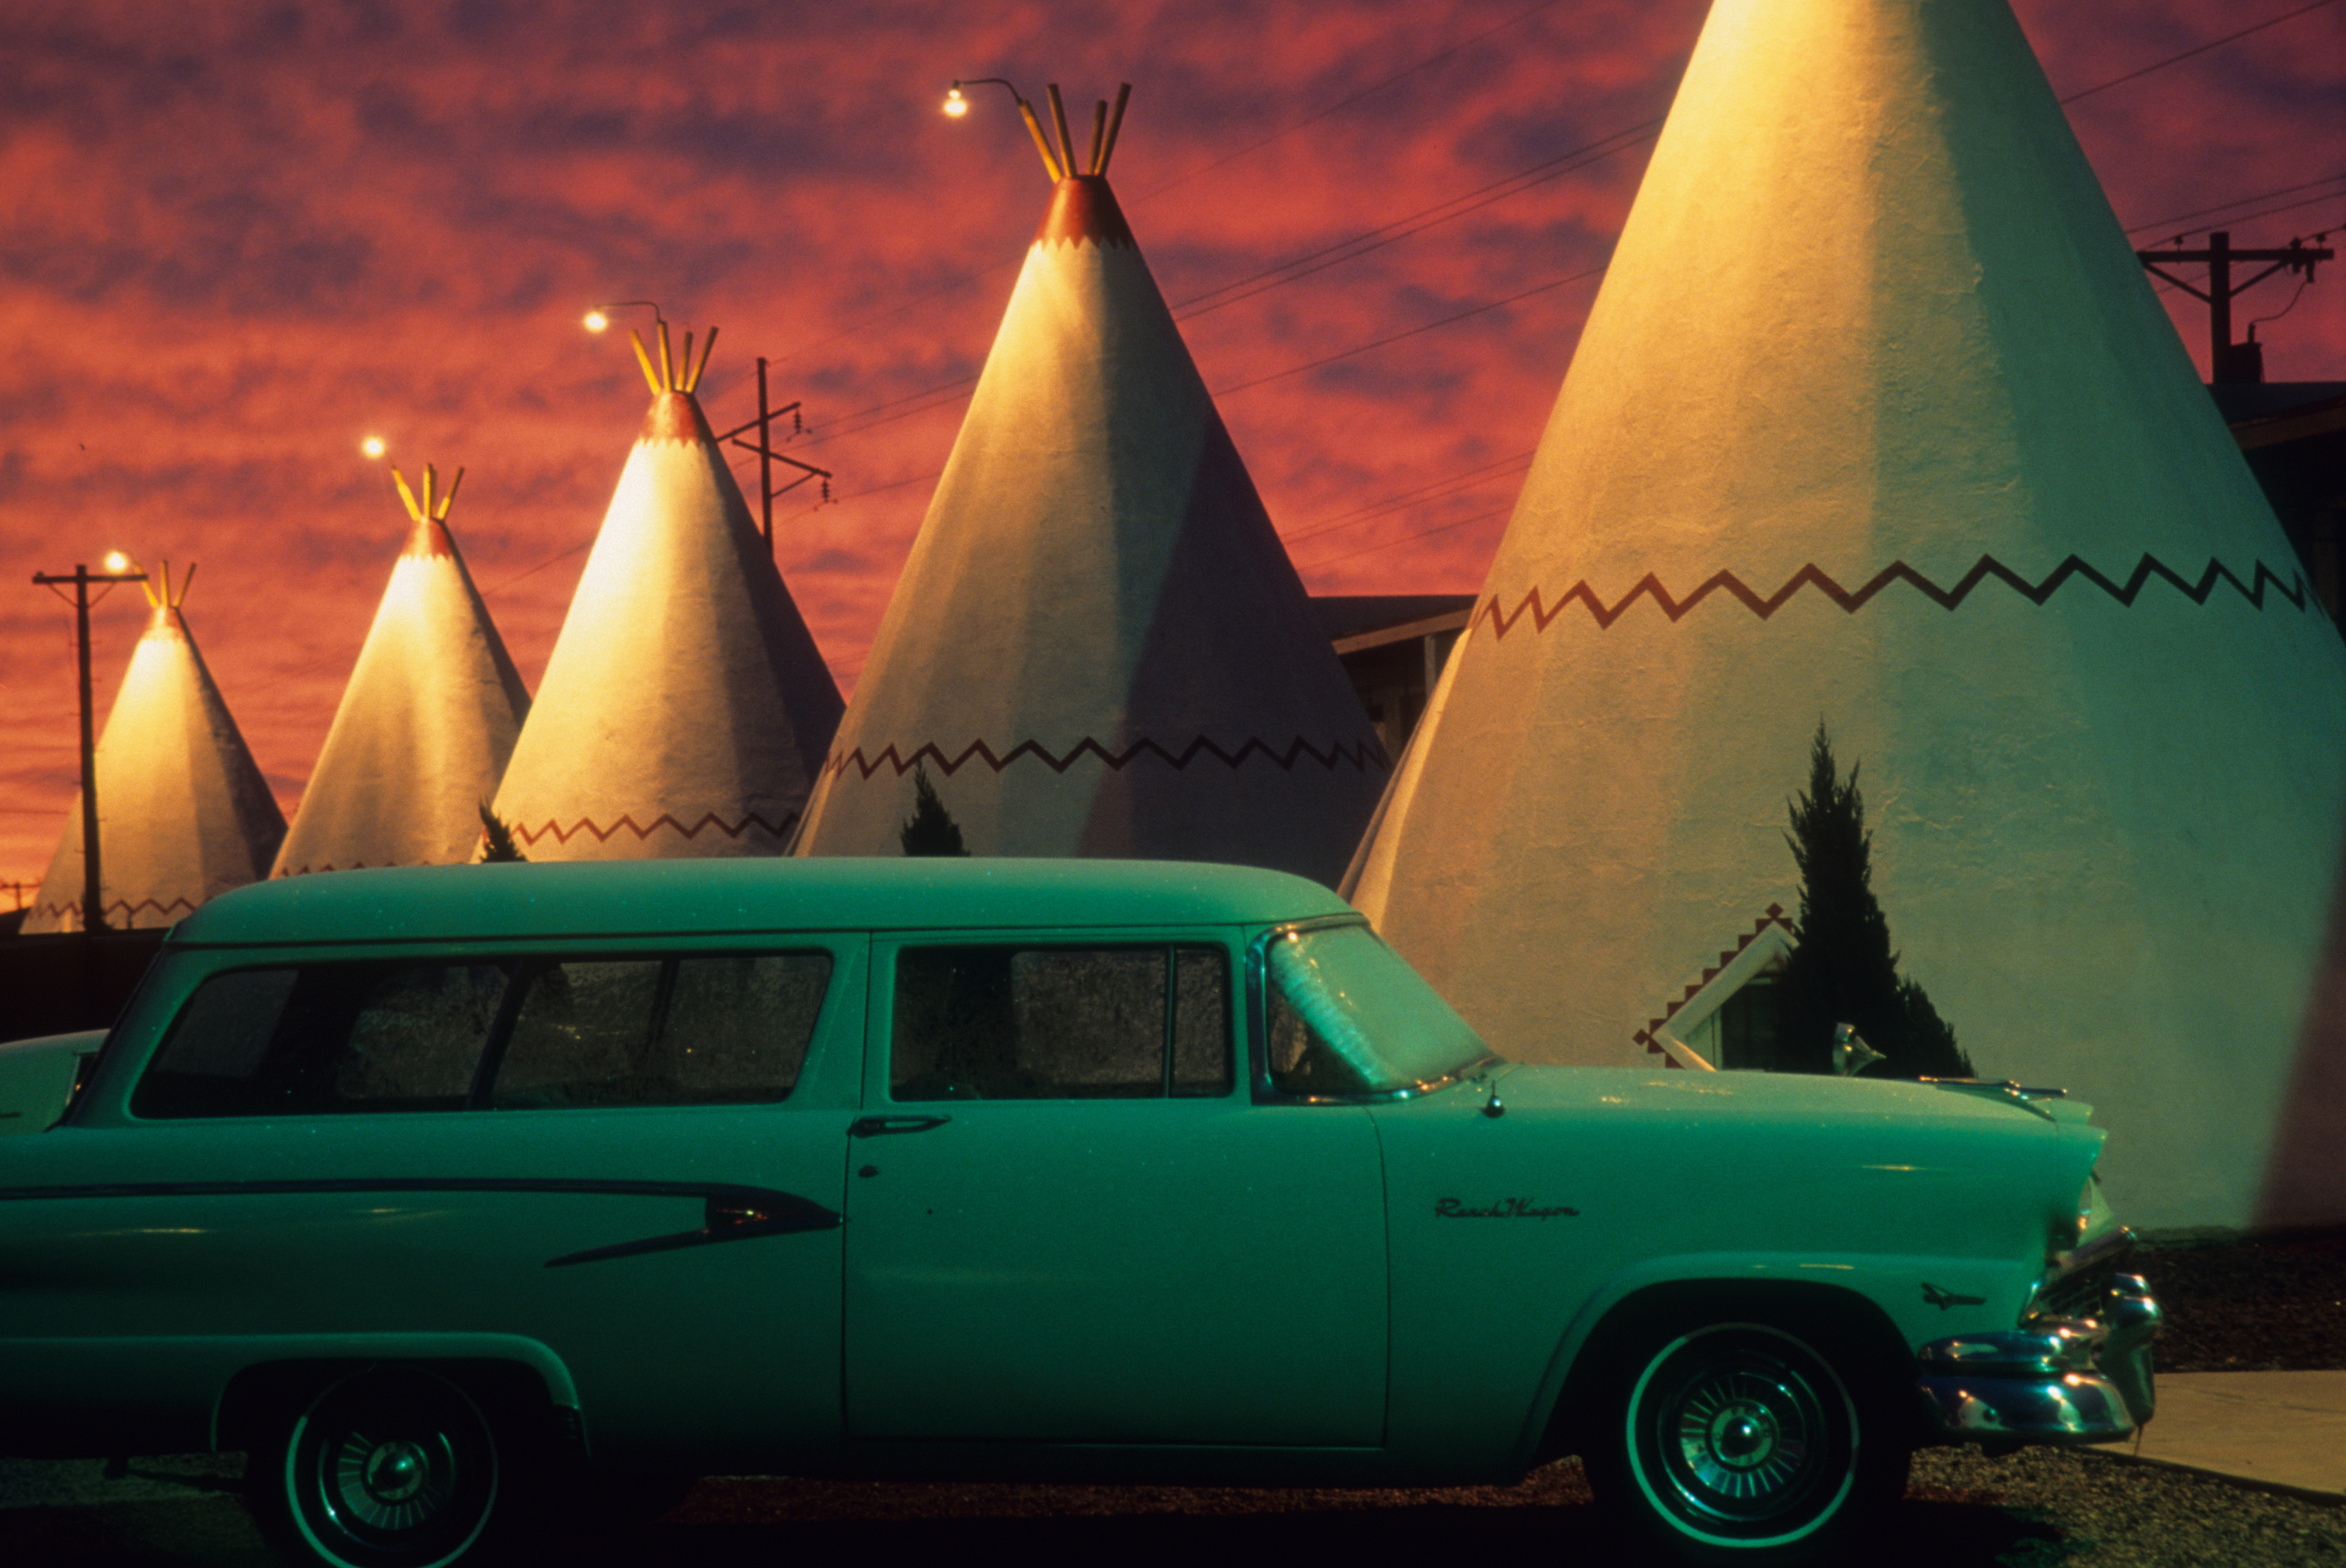 No photographer could ignore the blood shot skies that towered over this 1960's era scene.- Peter Guttman